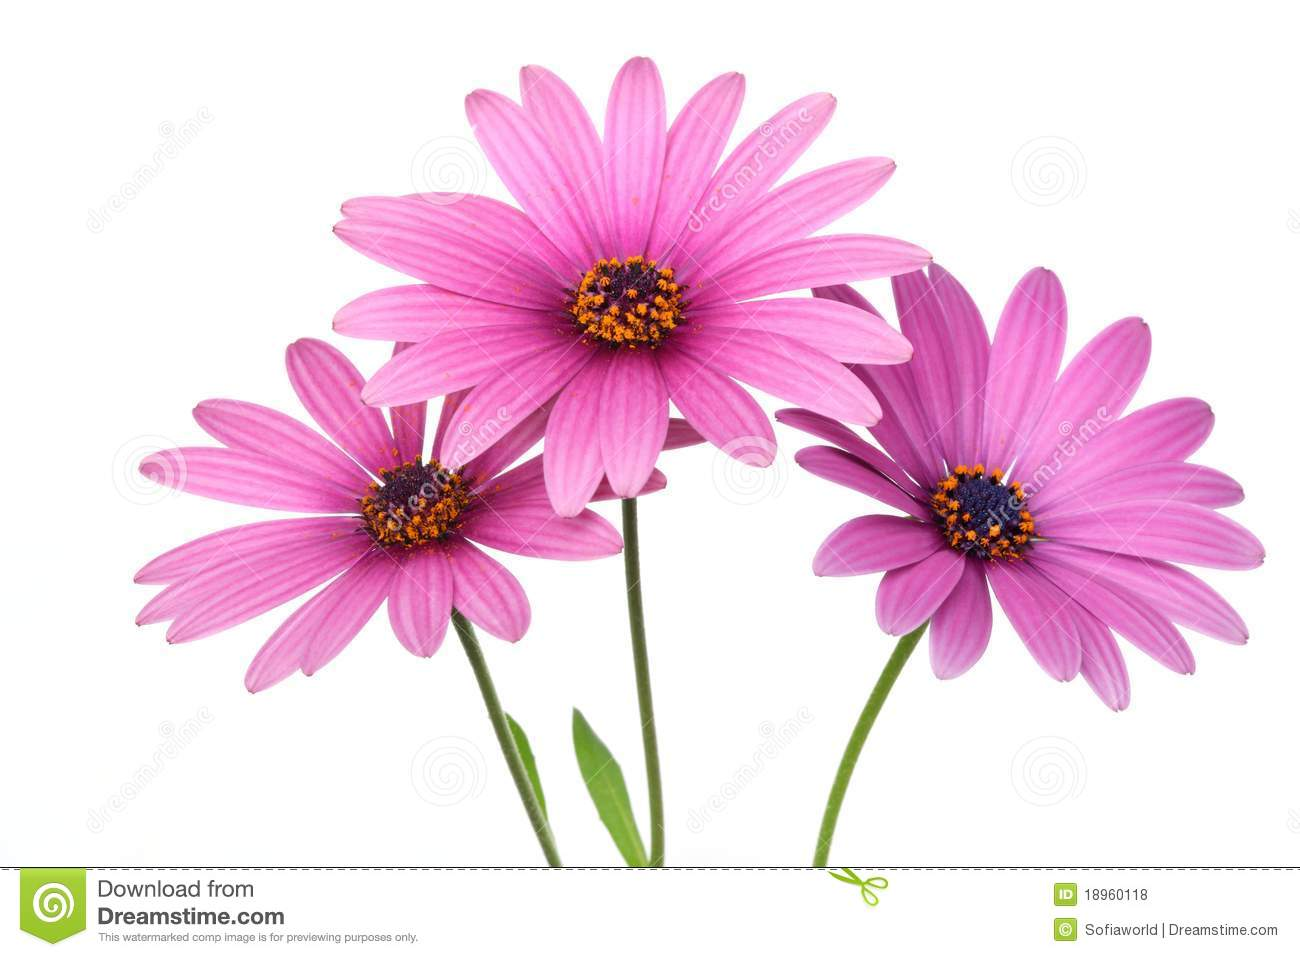 Pink daisy flower stock photo image of marigold daisy 18960118 download pink daisy flower stock photo image of marigold daisy 18960118 izmirmasajfo